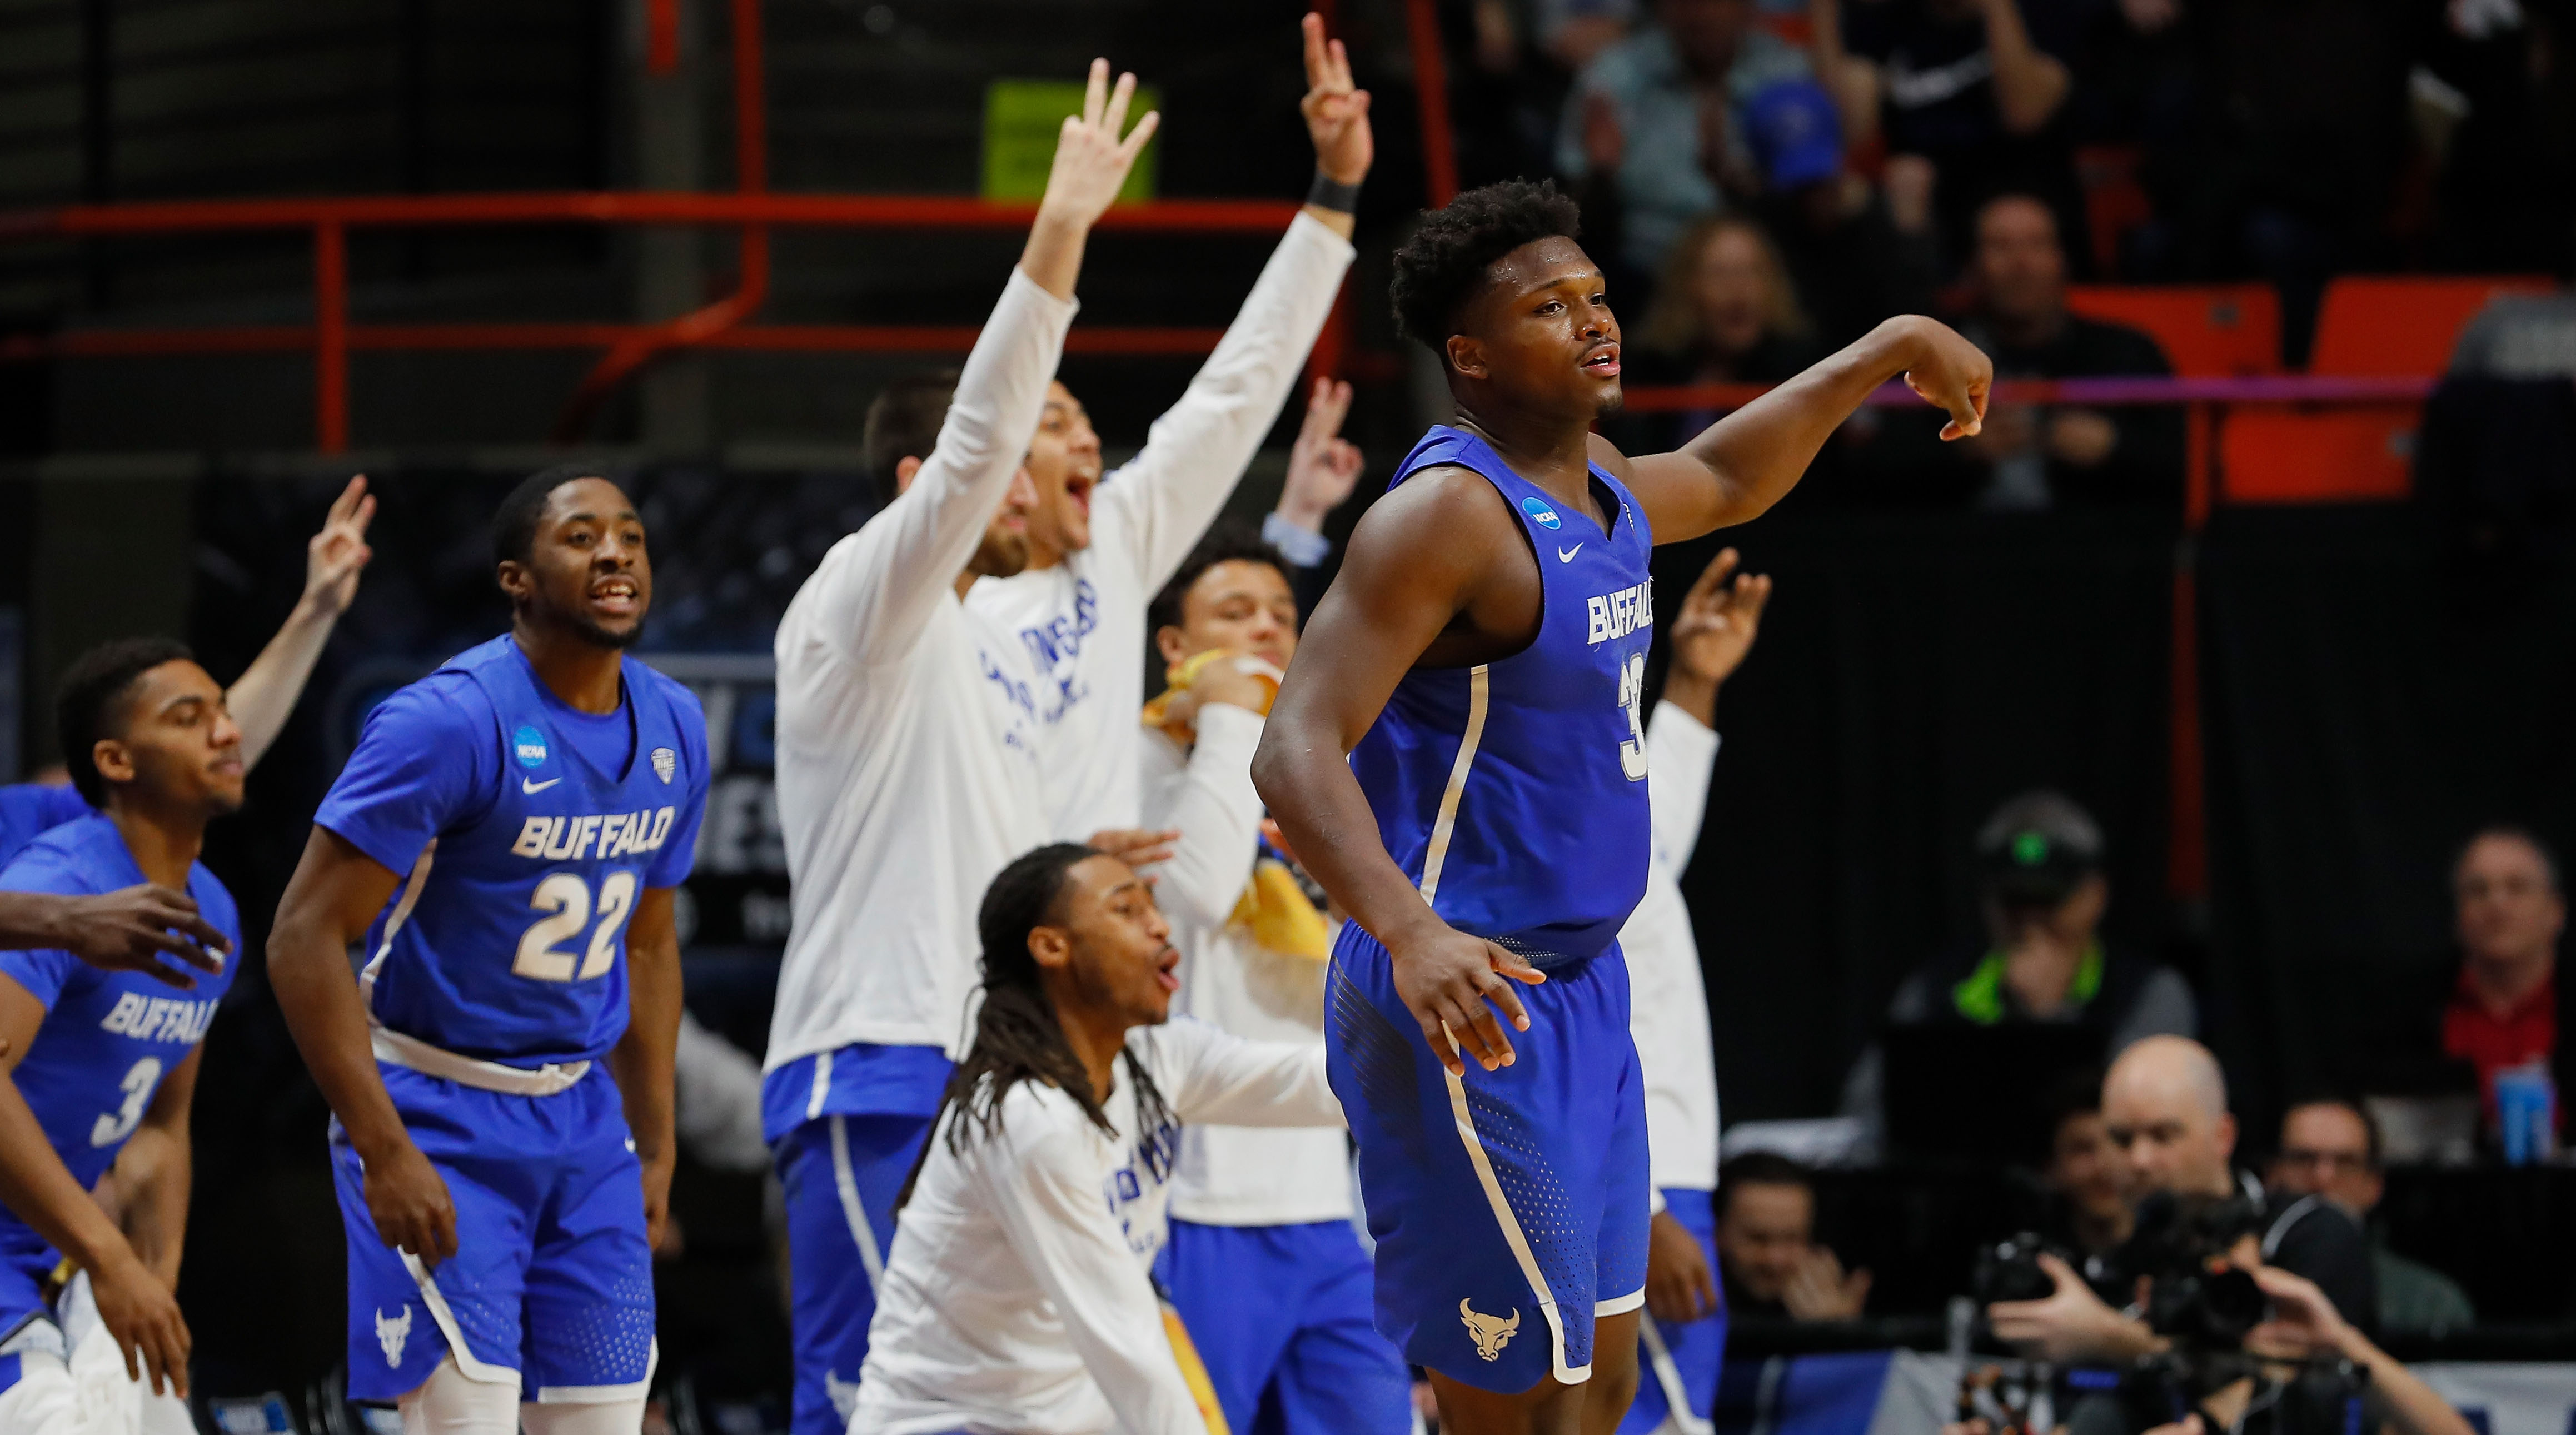 kentucky vs buffalo live stream march madness time tv channel